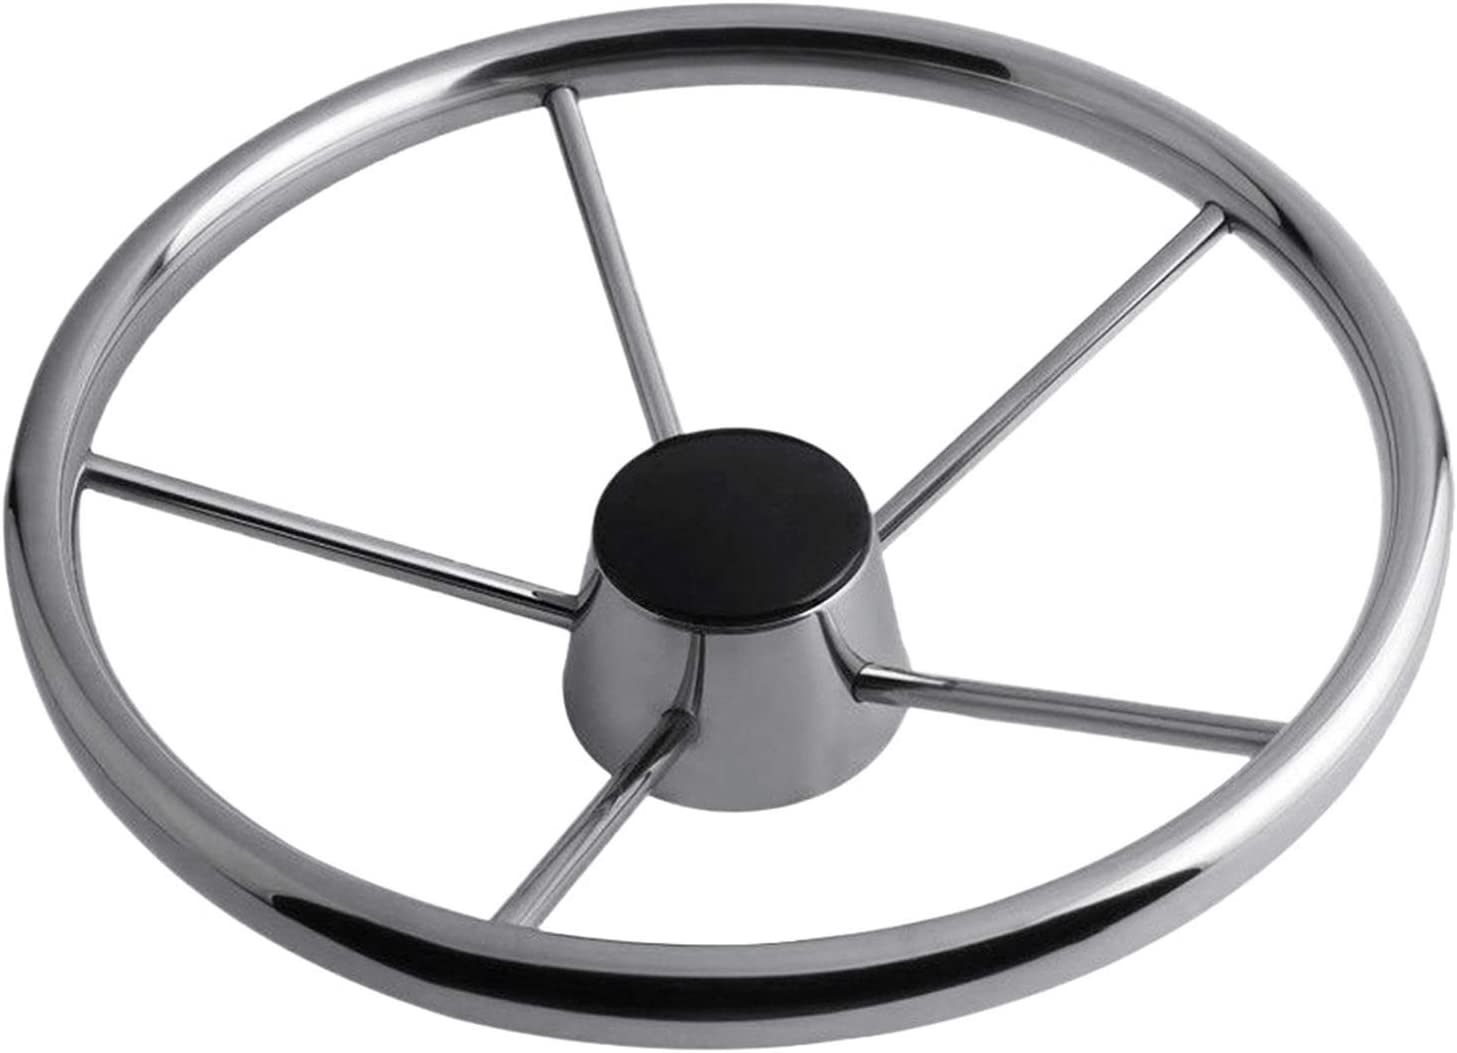 Boat Accessories 1pcs 343mm Steering Bombing free shipping Inexpensive Steel Stainless Wheel